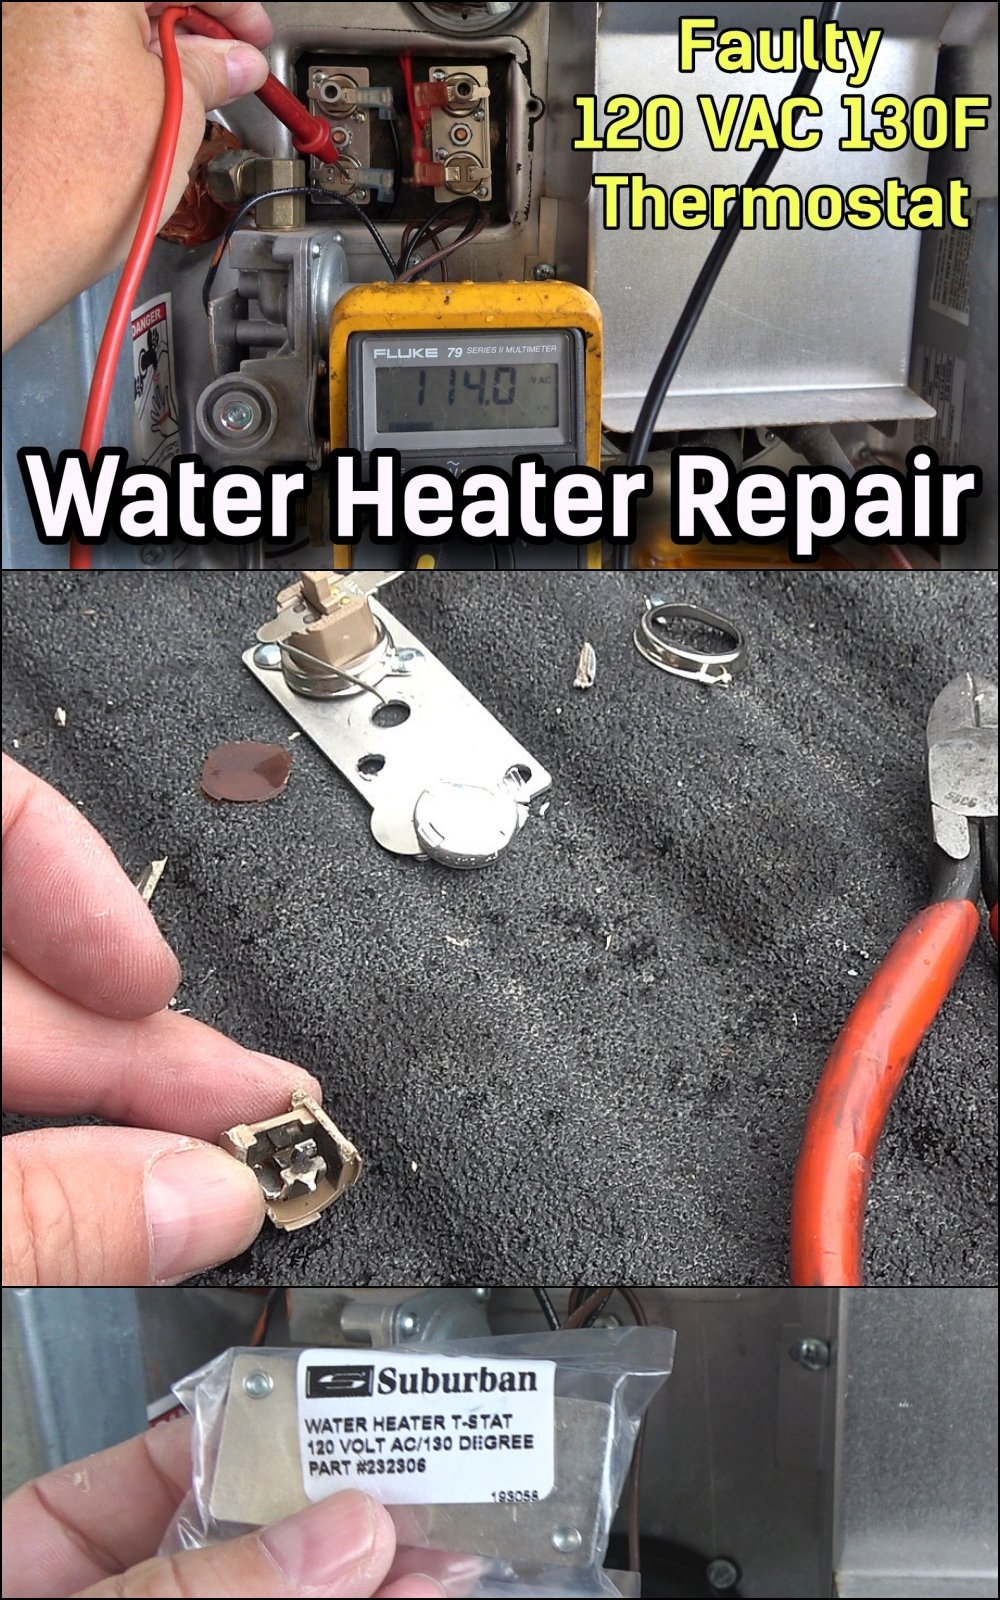 Replacing a Faulty Suburban RV Water Heater 130F Degree Thermostat